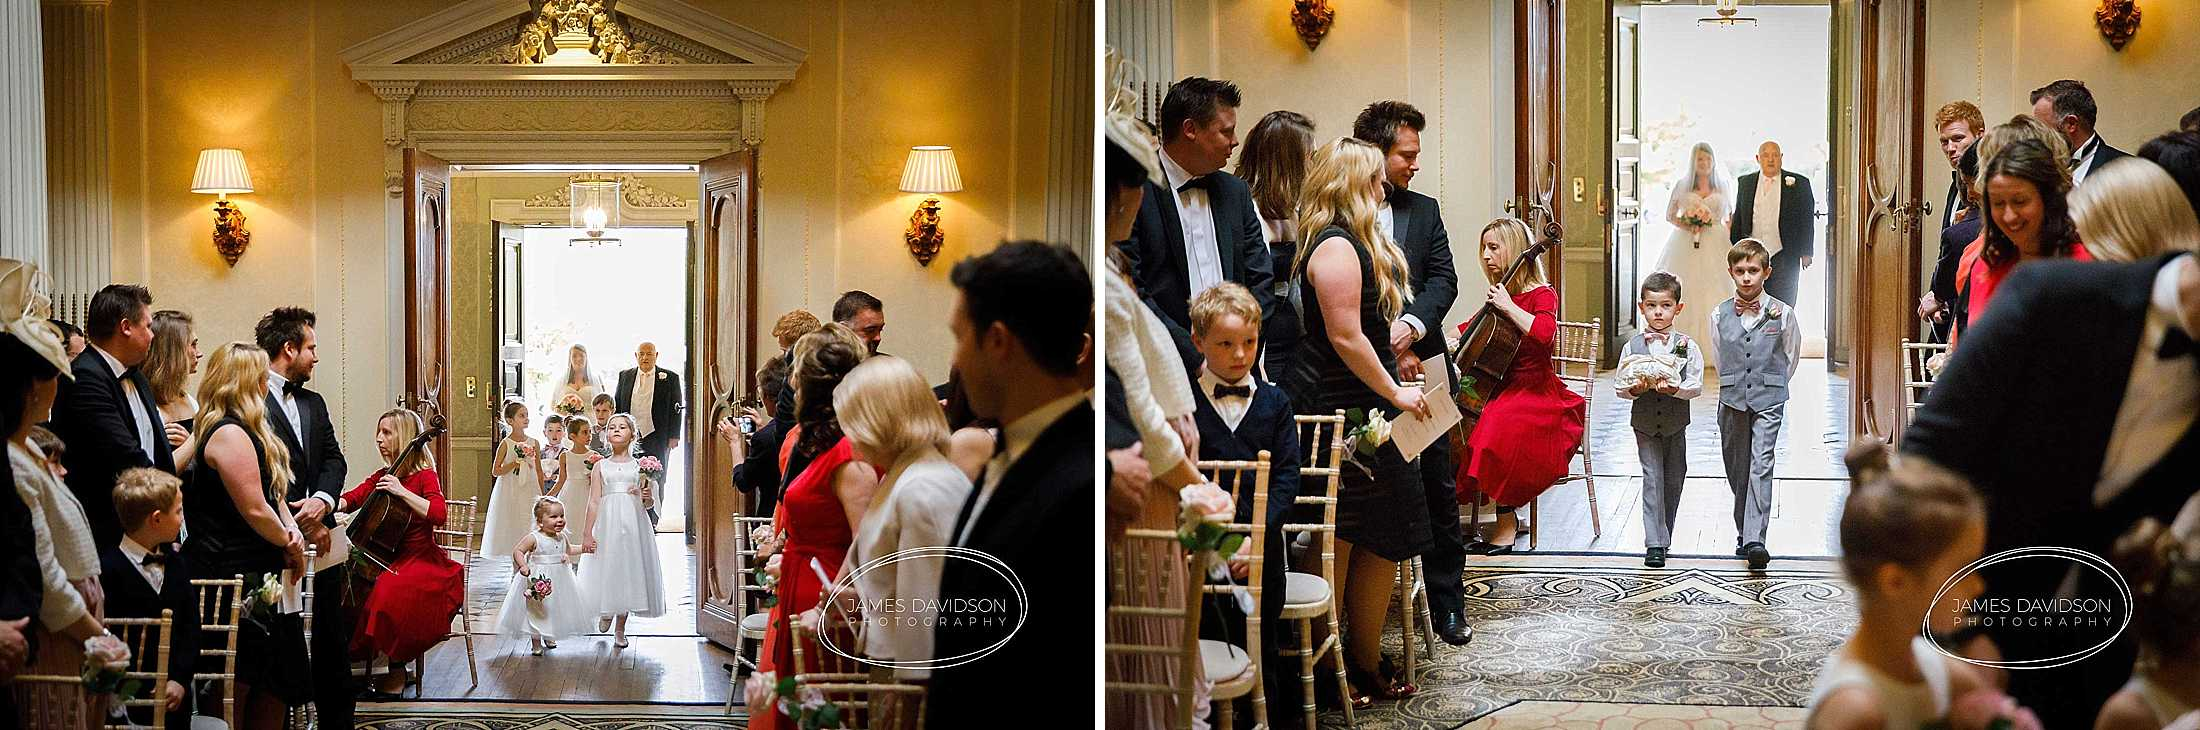 hedsor-house-wedding-photographer-052